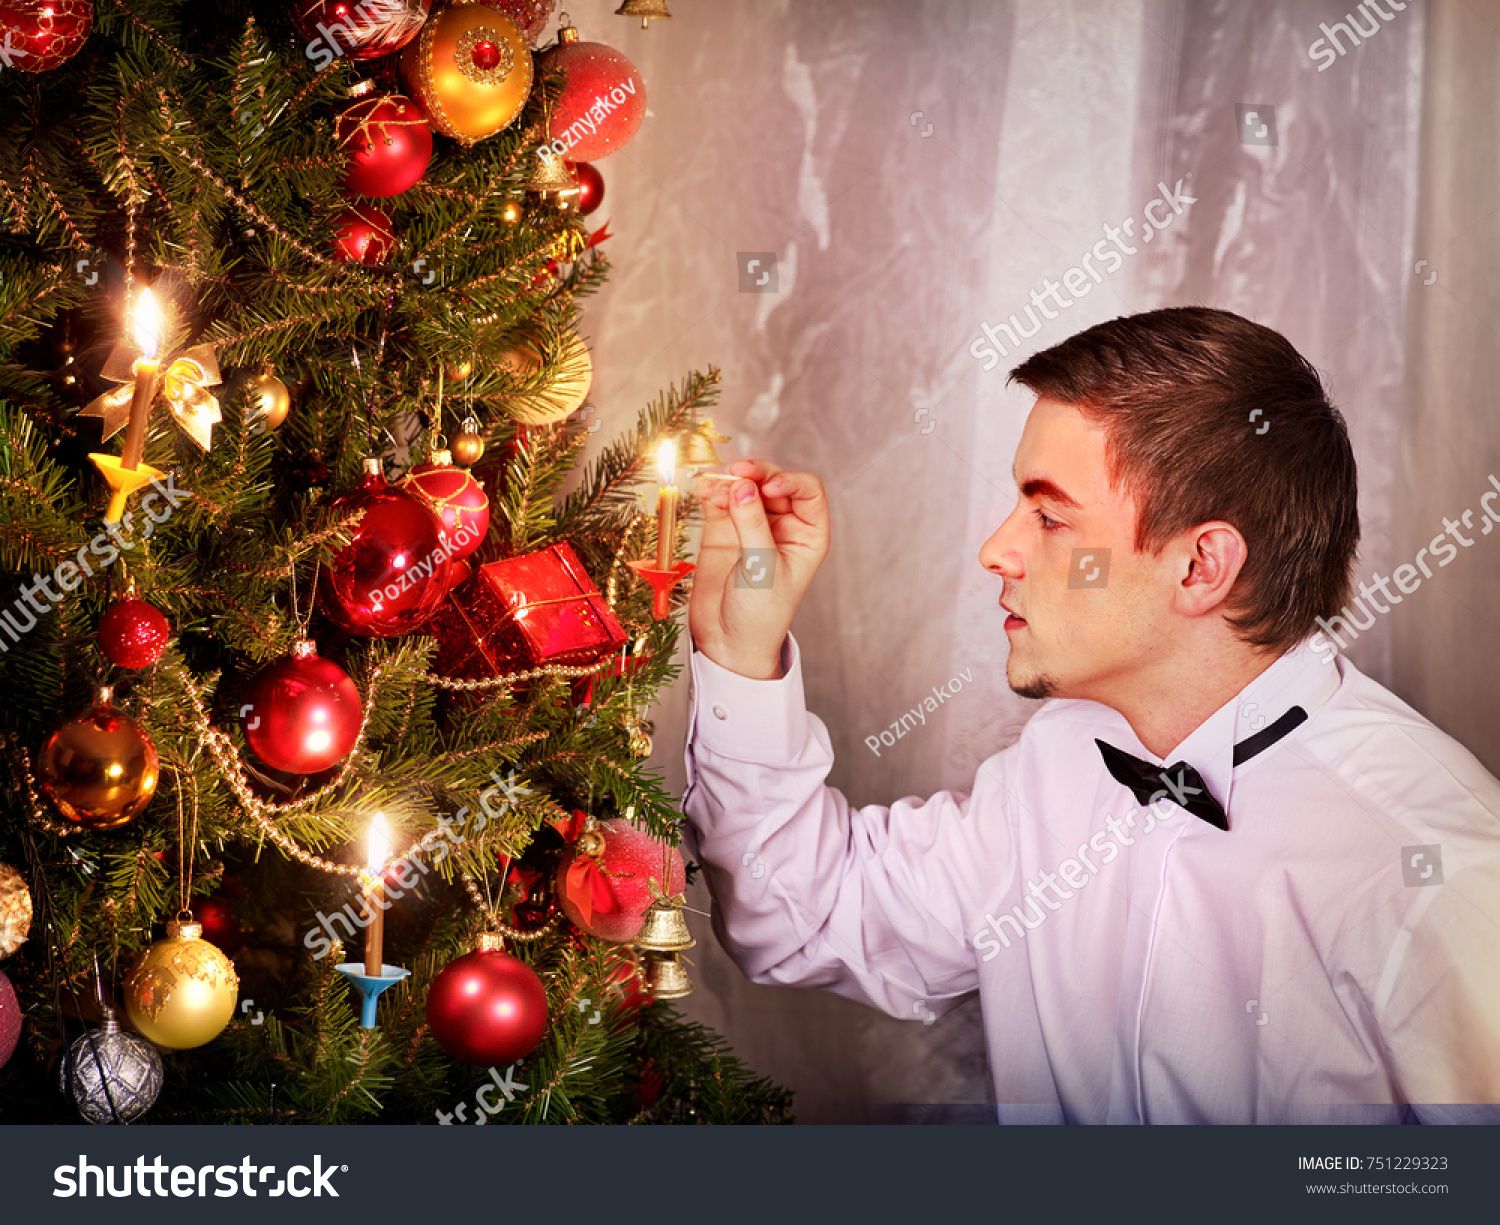 Man Dressing Christmas Tree Expectation Holiday Stock